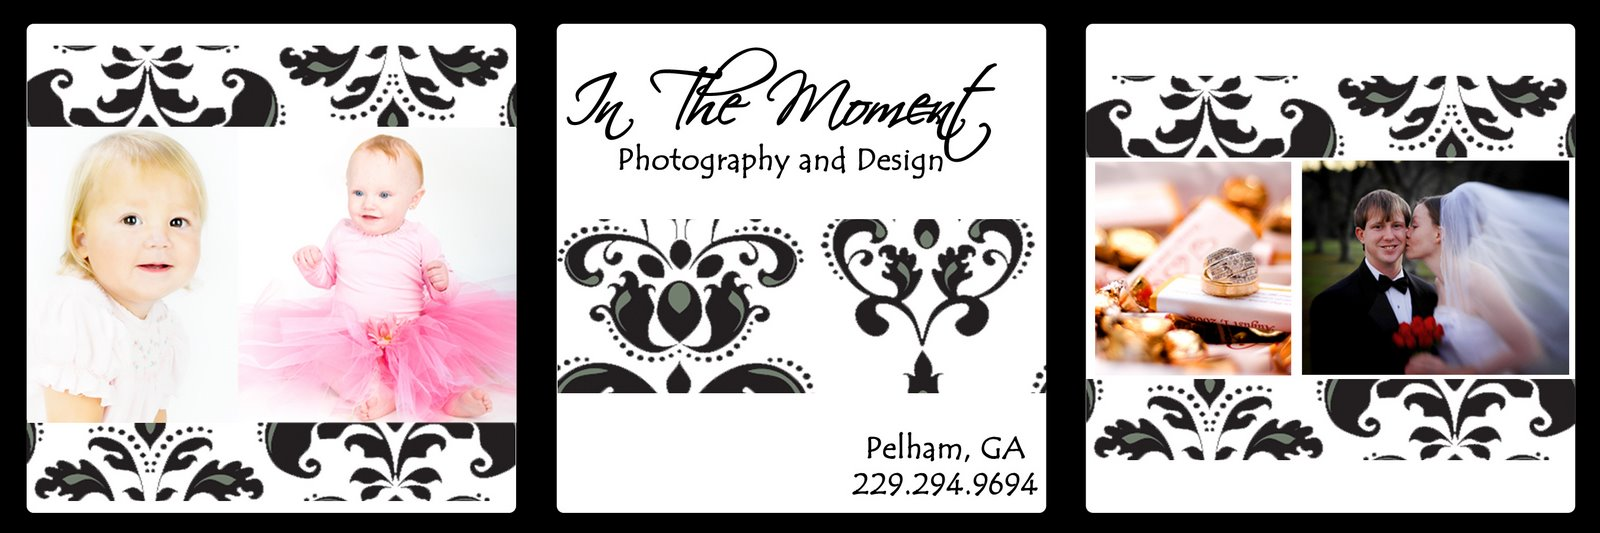 In the Moment Photography and Design